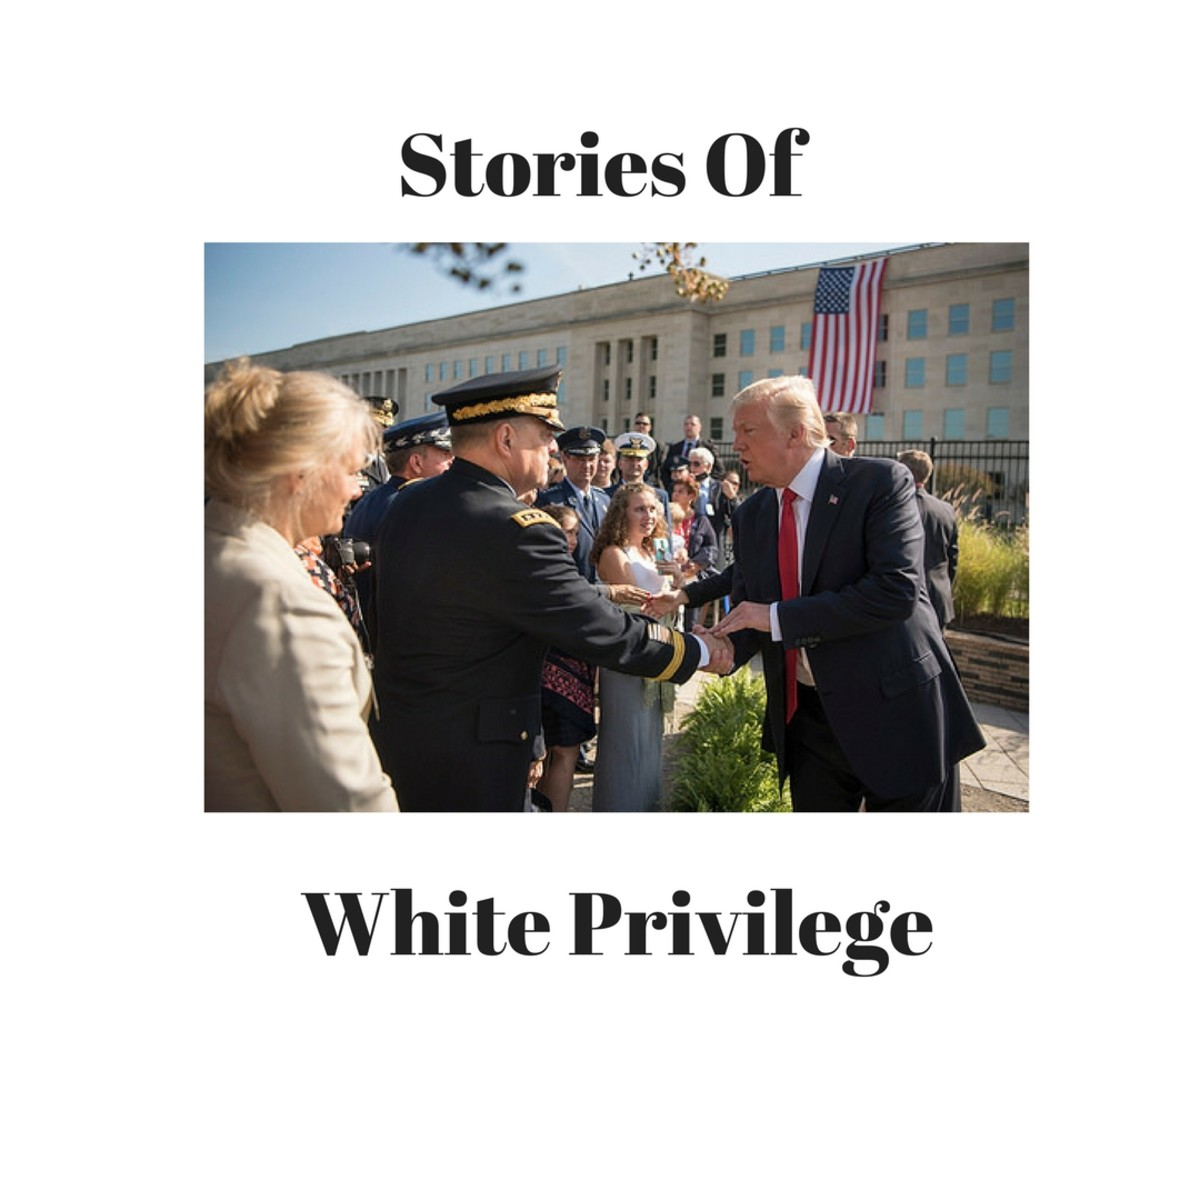 Stories of White Privilege